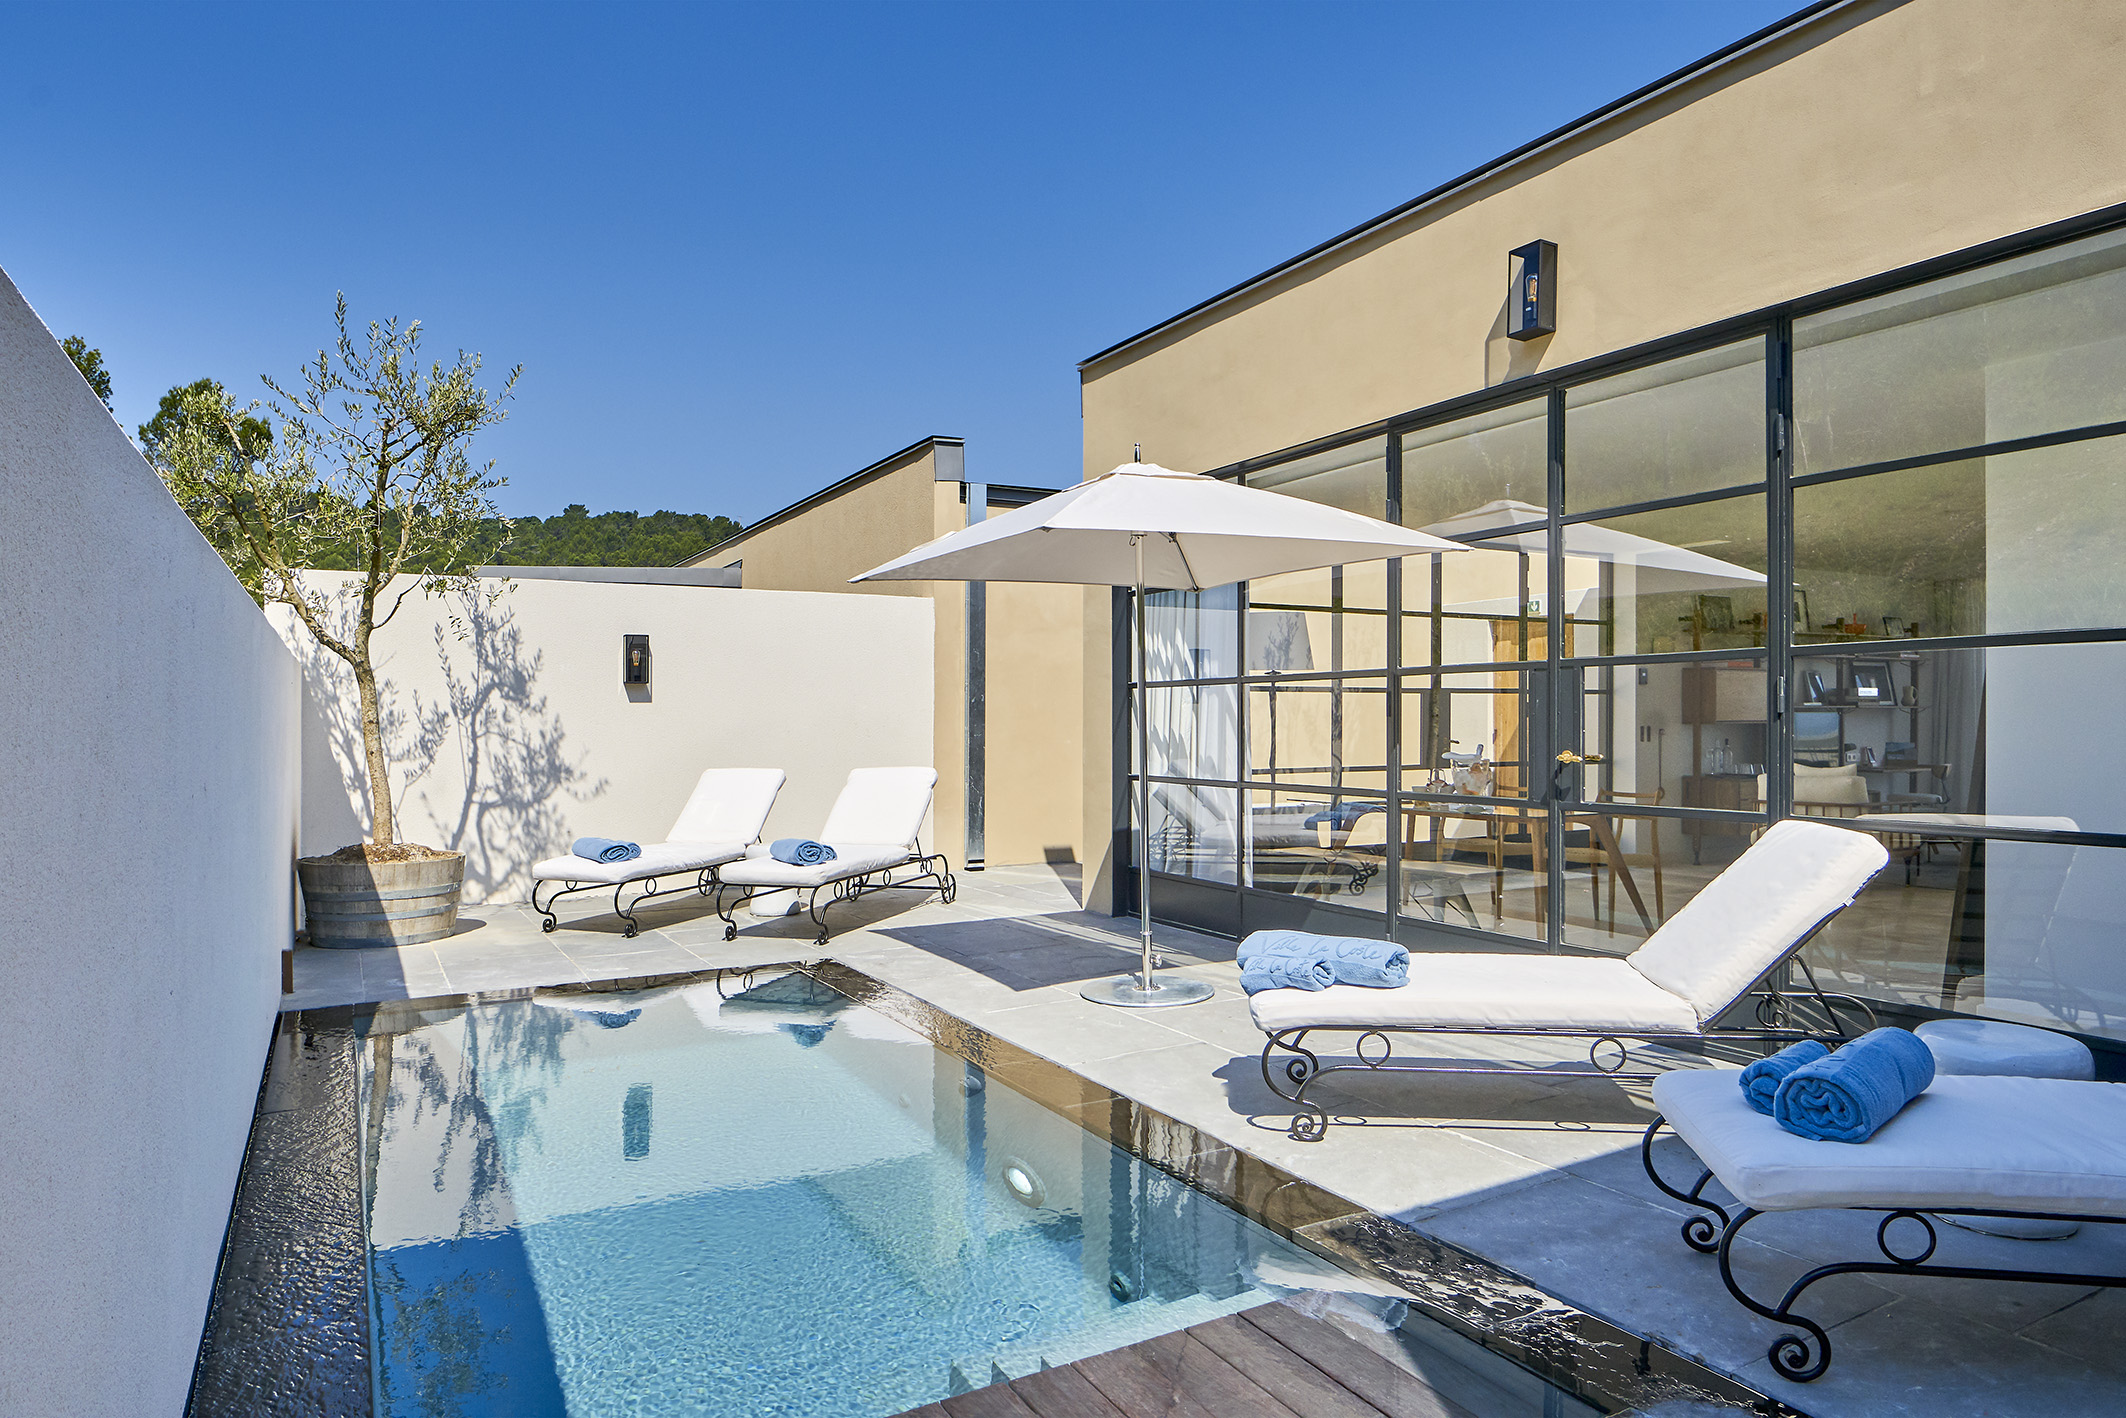 2 bedroom pool villa suite suites de luxe en provence for Piscine salon de provence